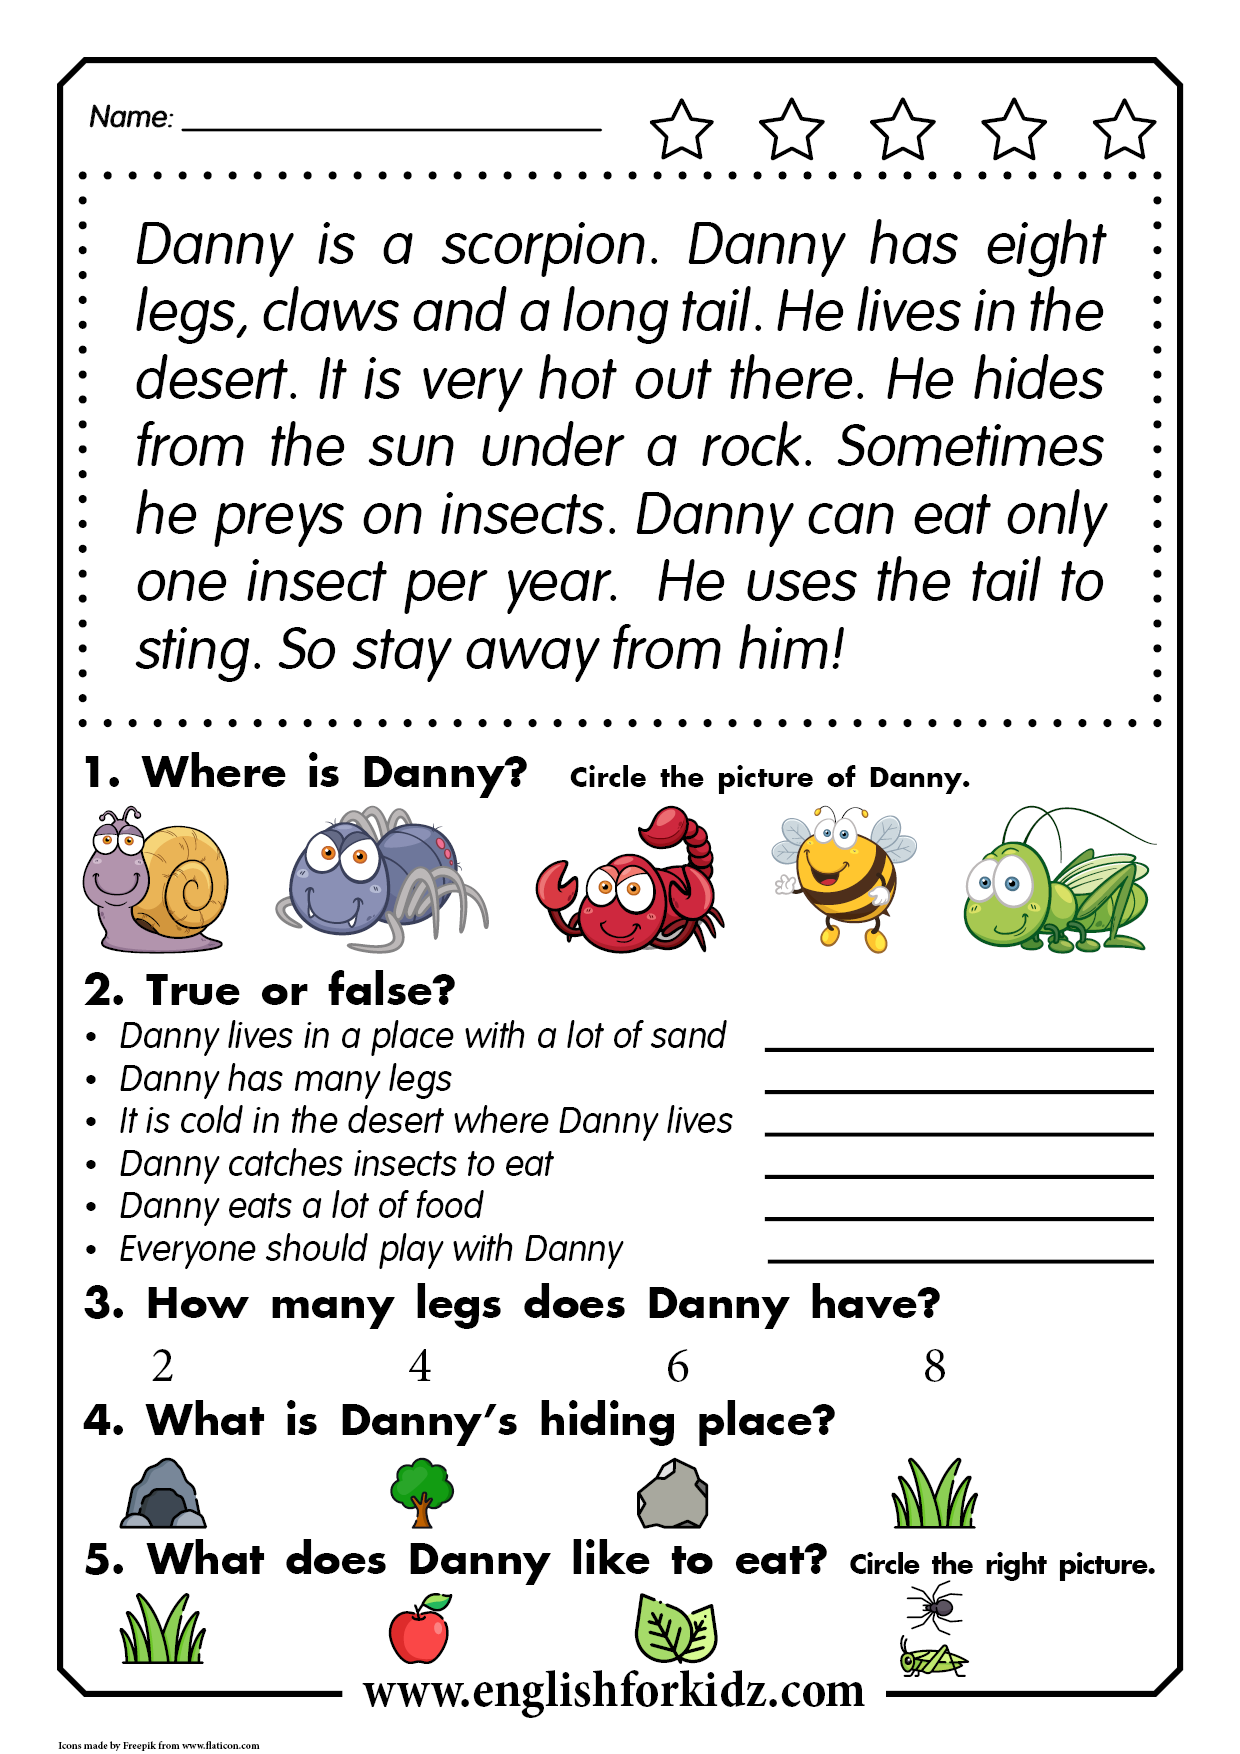 Reading Comprehension Passage For Kids Learning English In